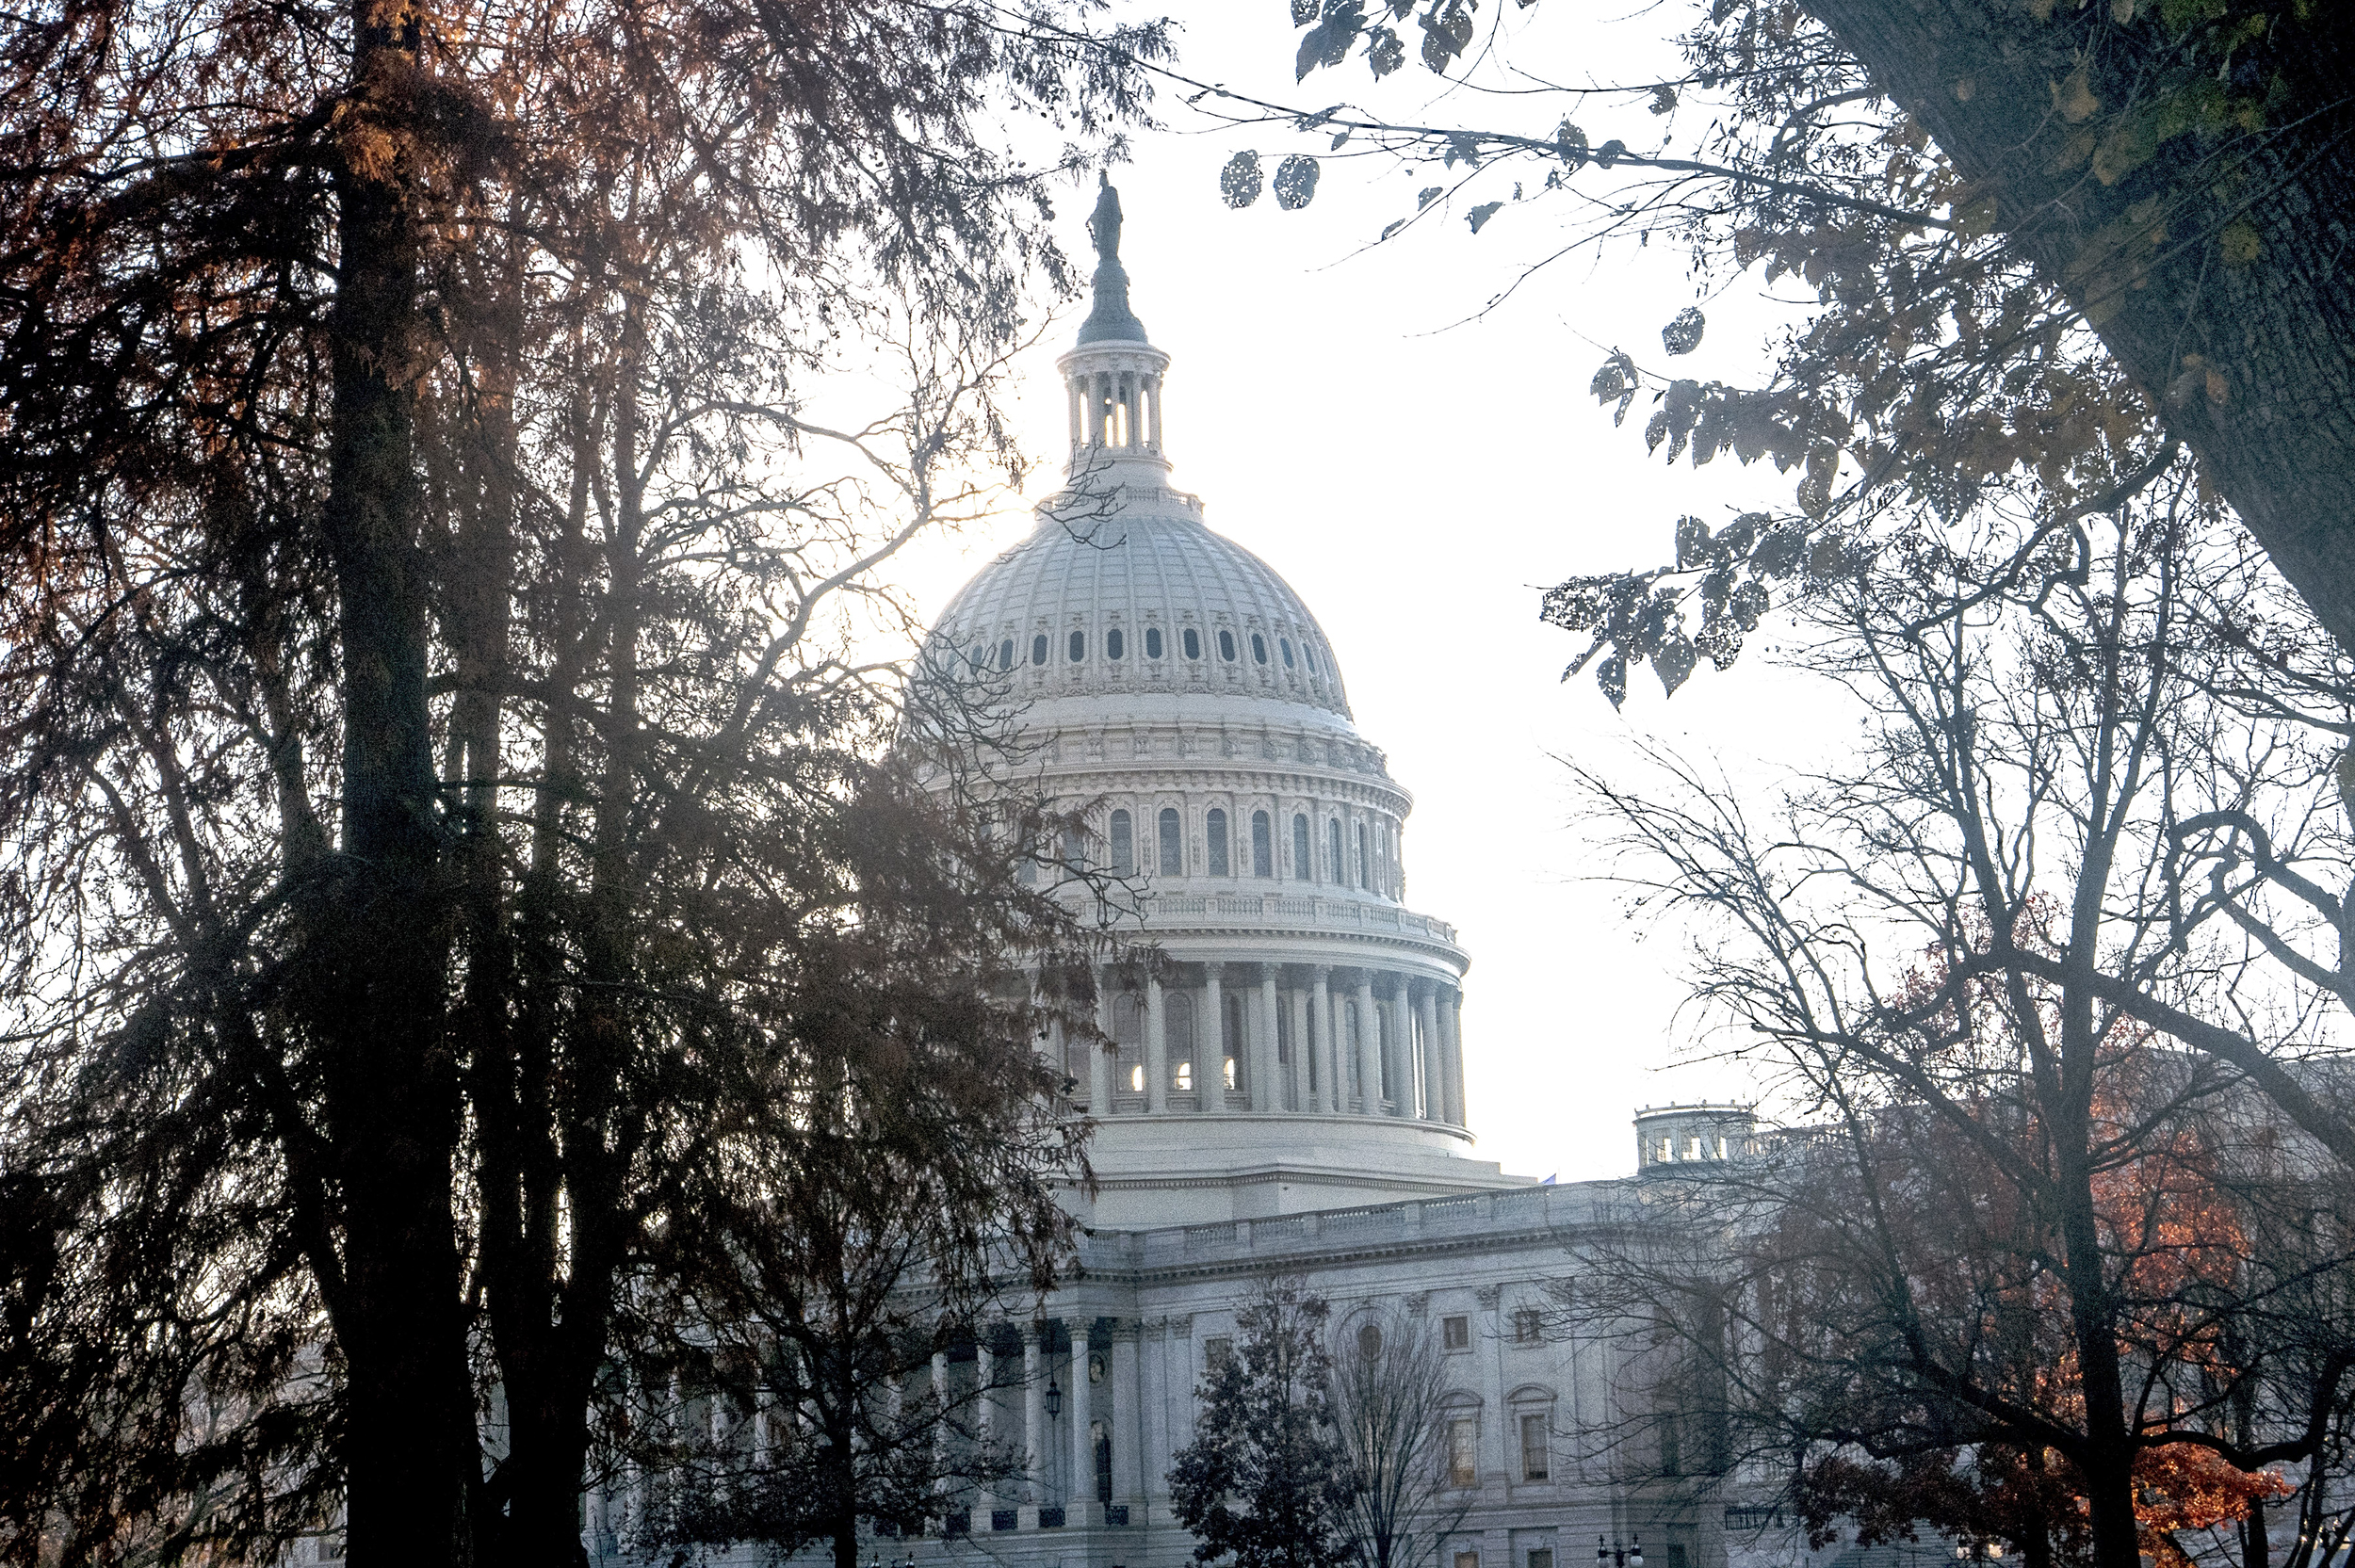 Image: The front of the U.S Capitol Building in Washington, DC on Dec. 1, 2017.